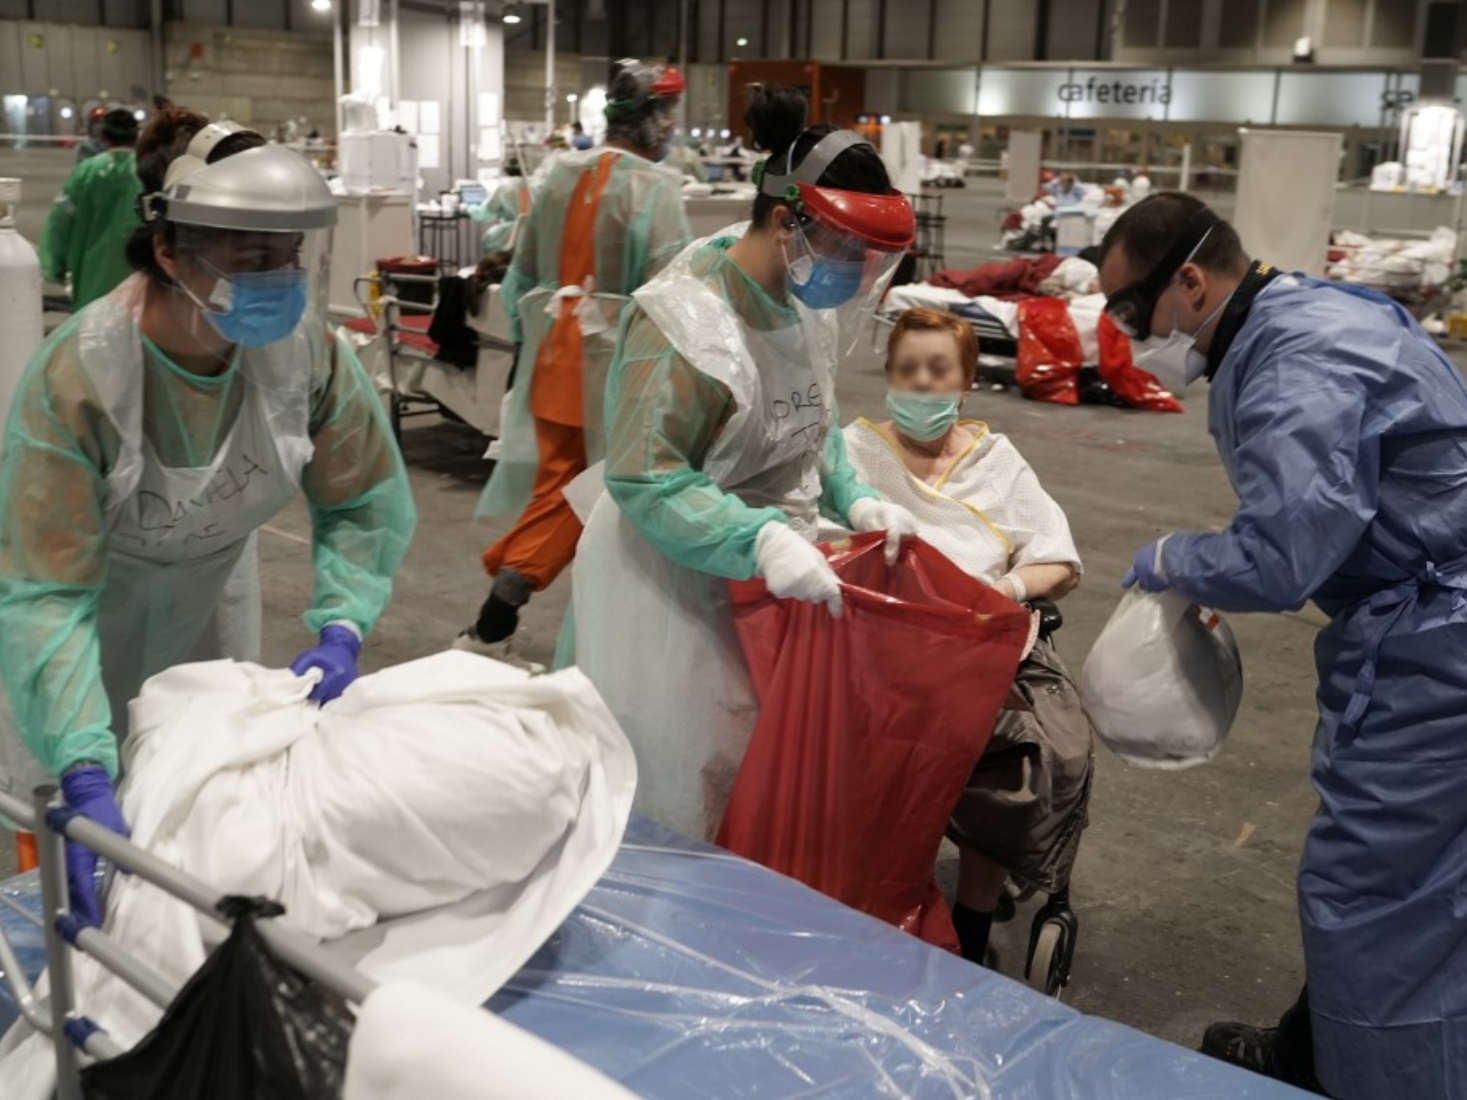 Spain's COVID-19 cases top 100,000